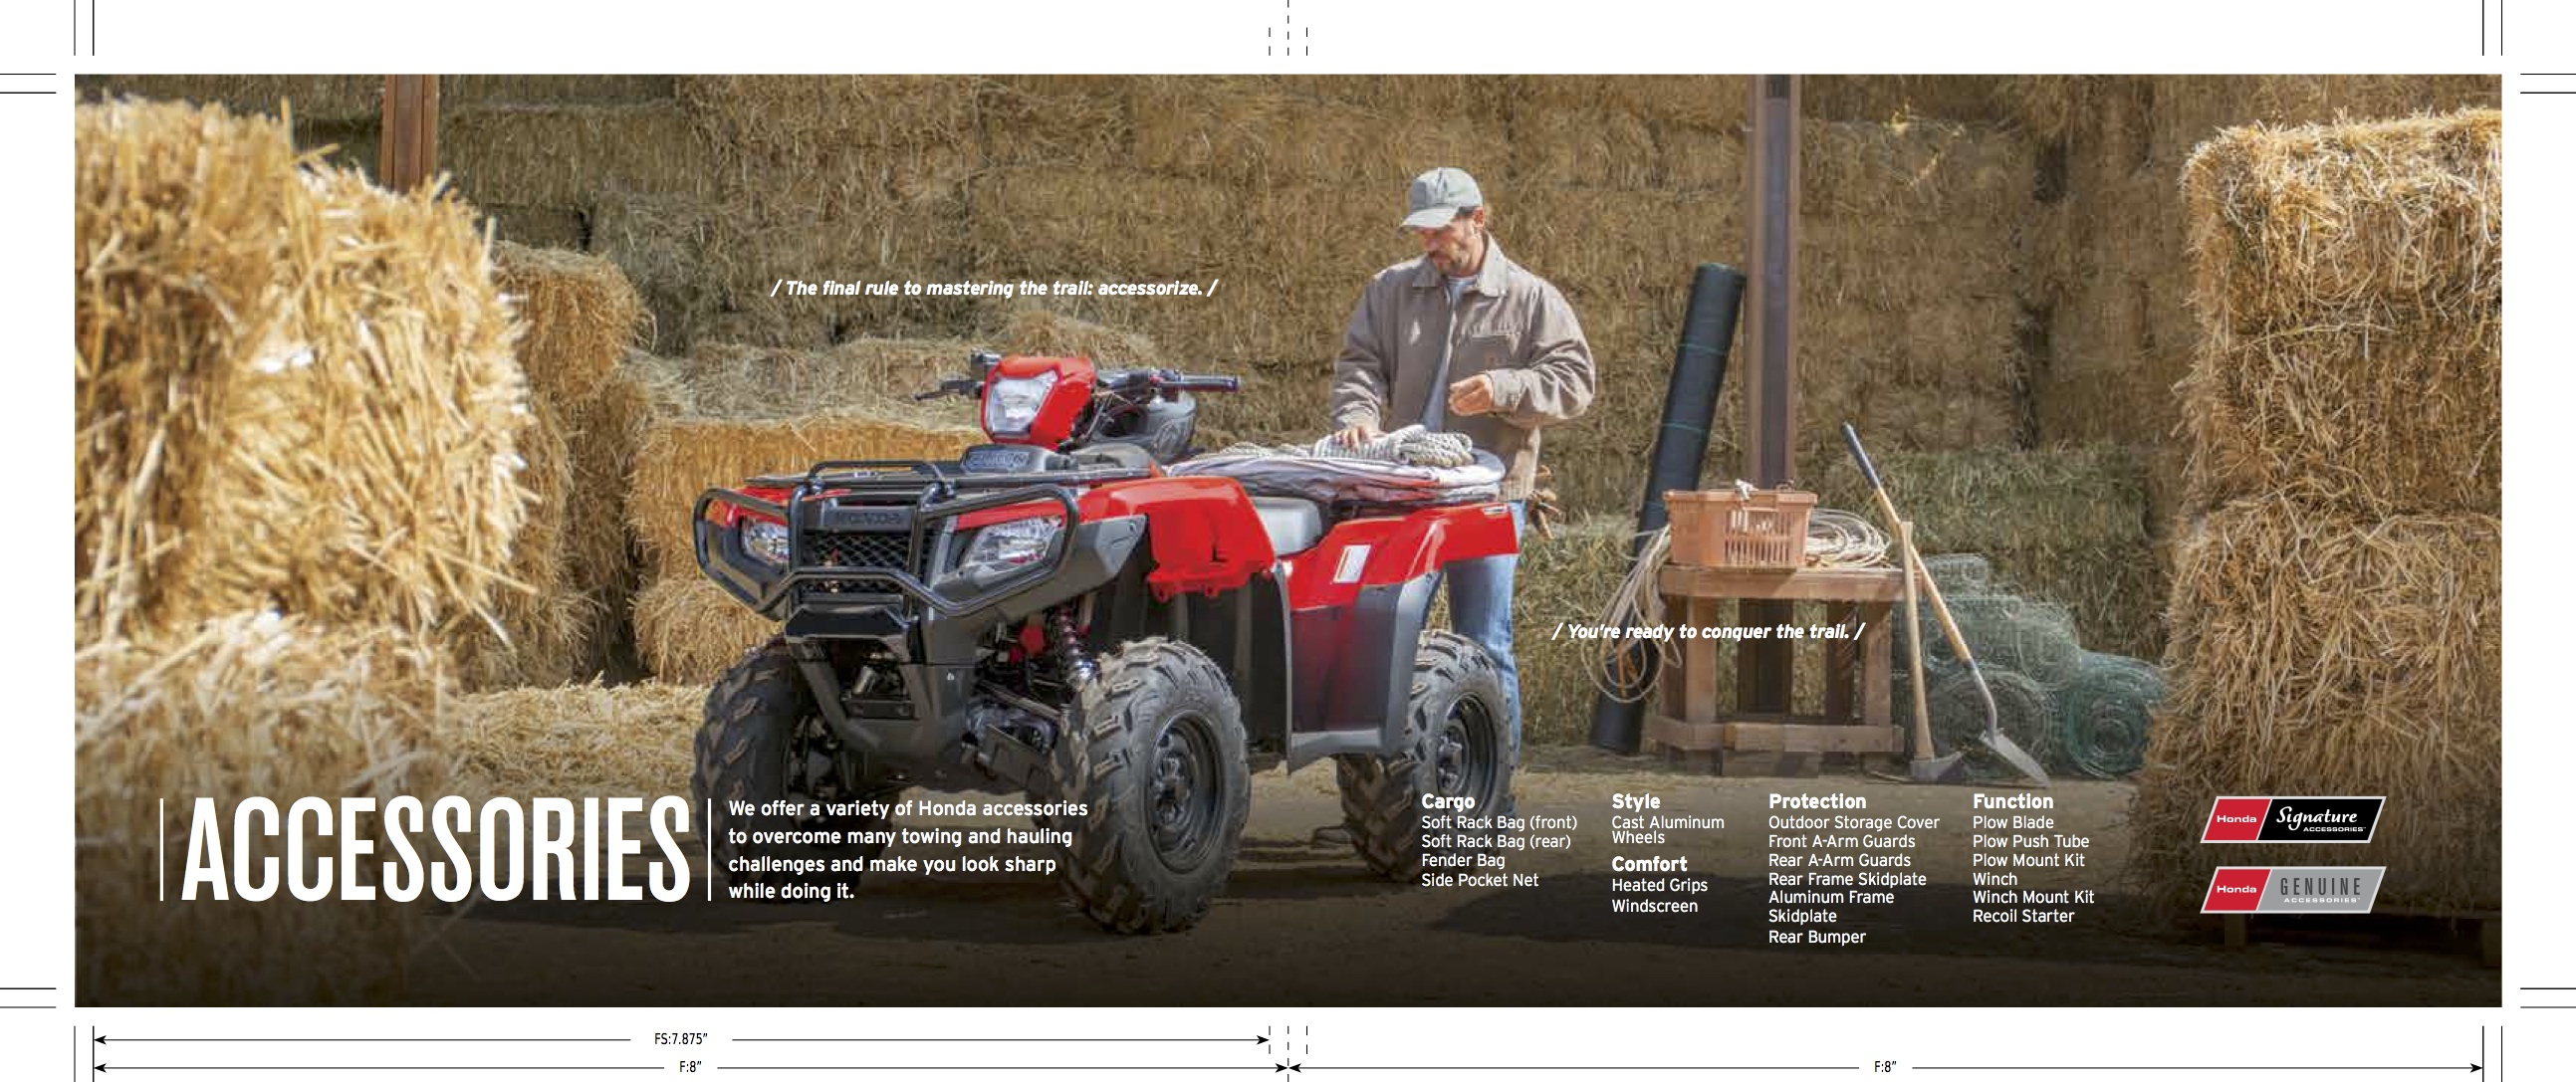 10241356_FY15ATV_Rubicon_Book_8x6 (dragged) 5